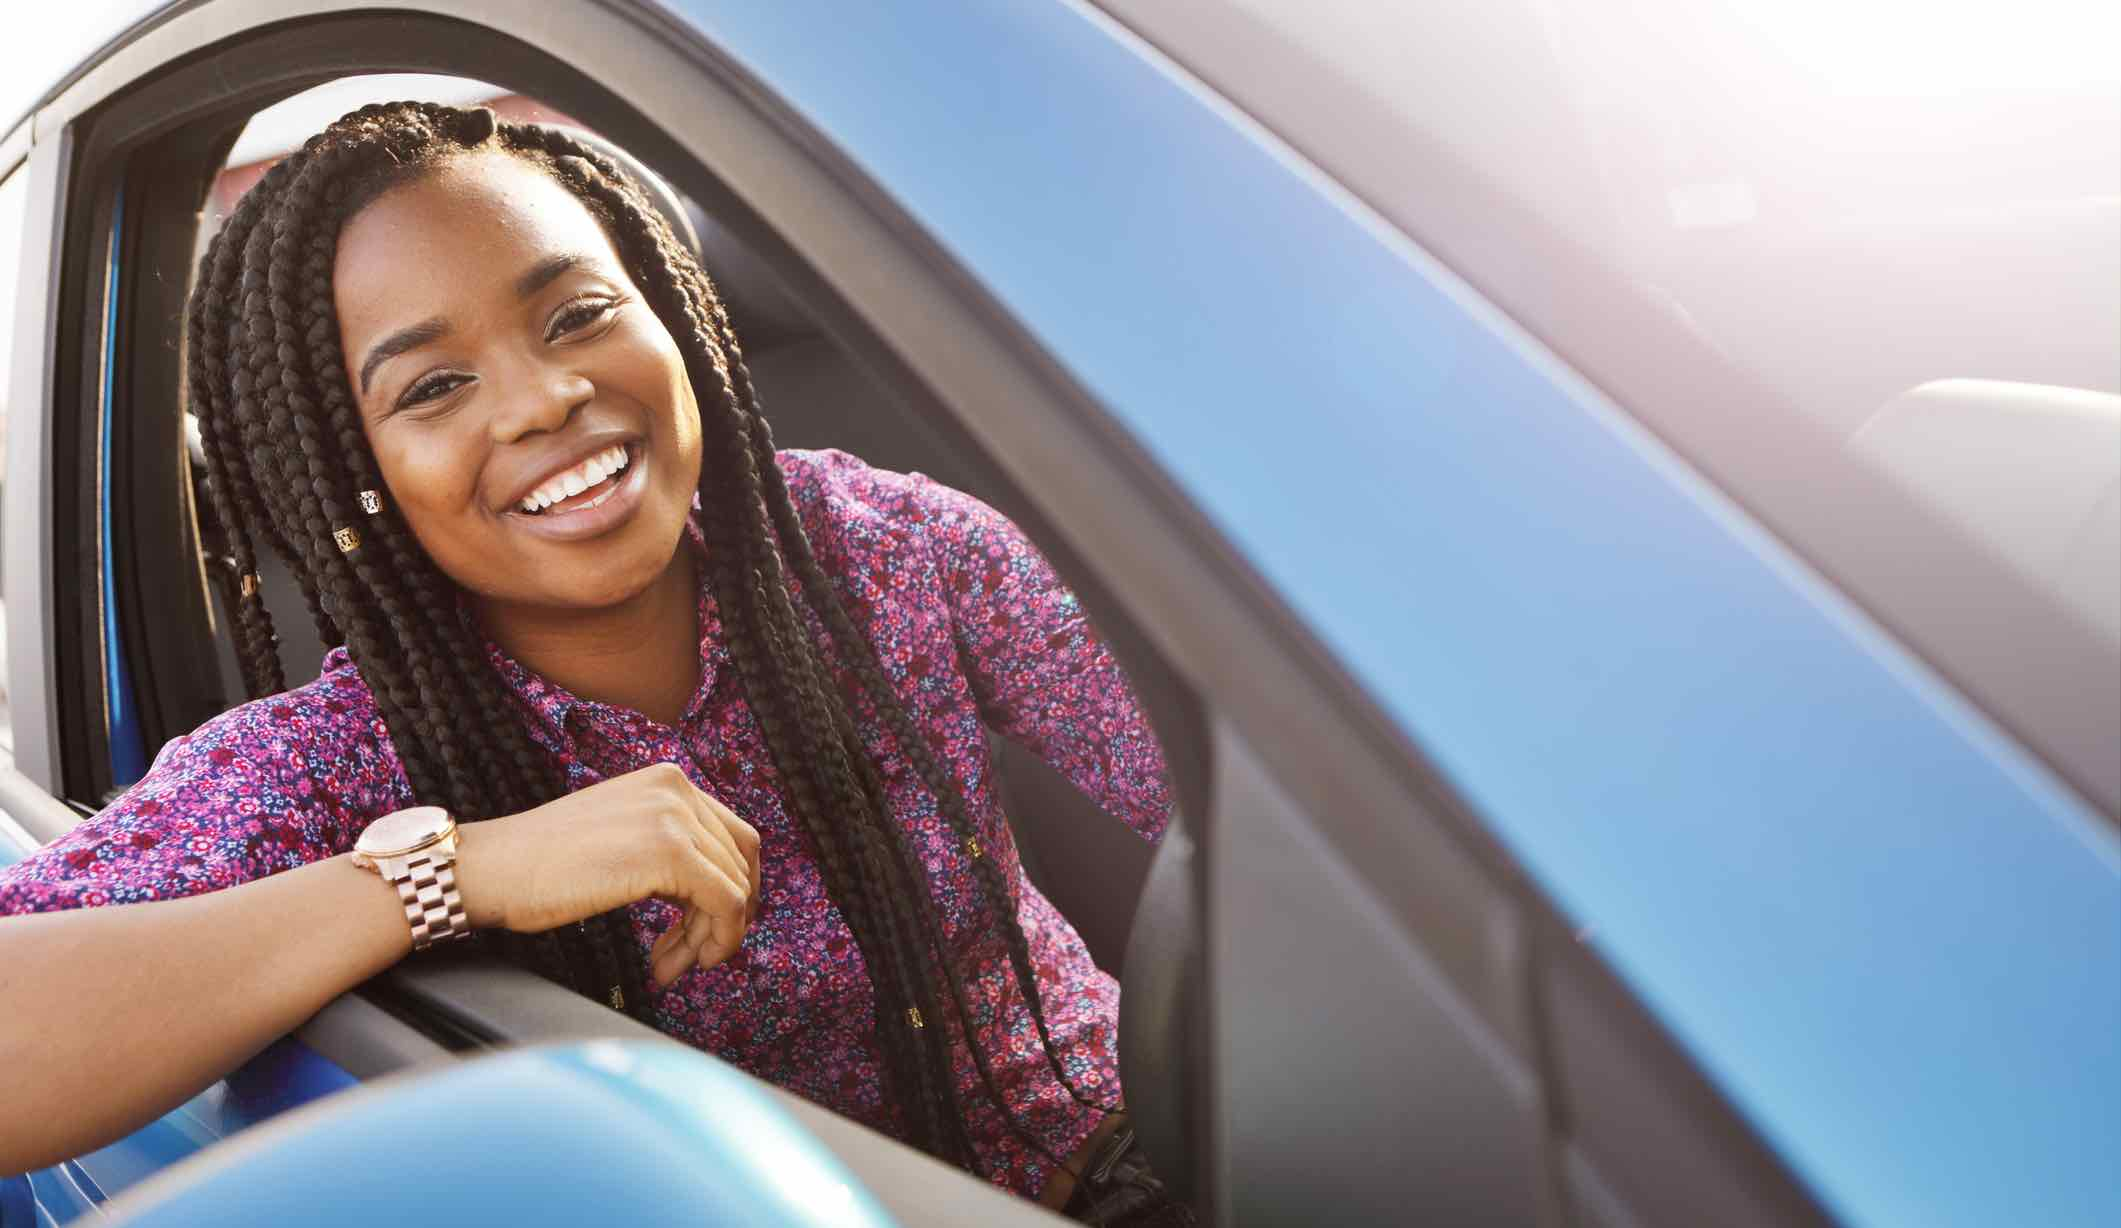 Young driver sitting in a car, considering CTP options and prices.